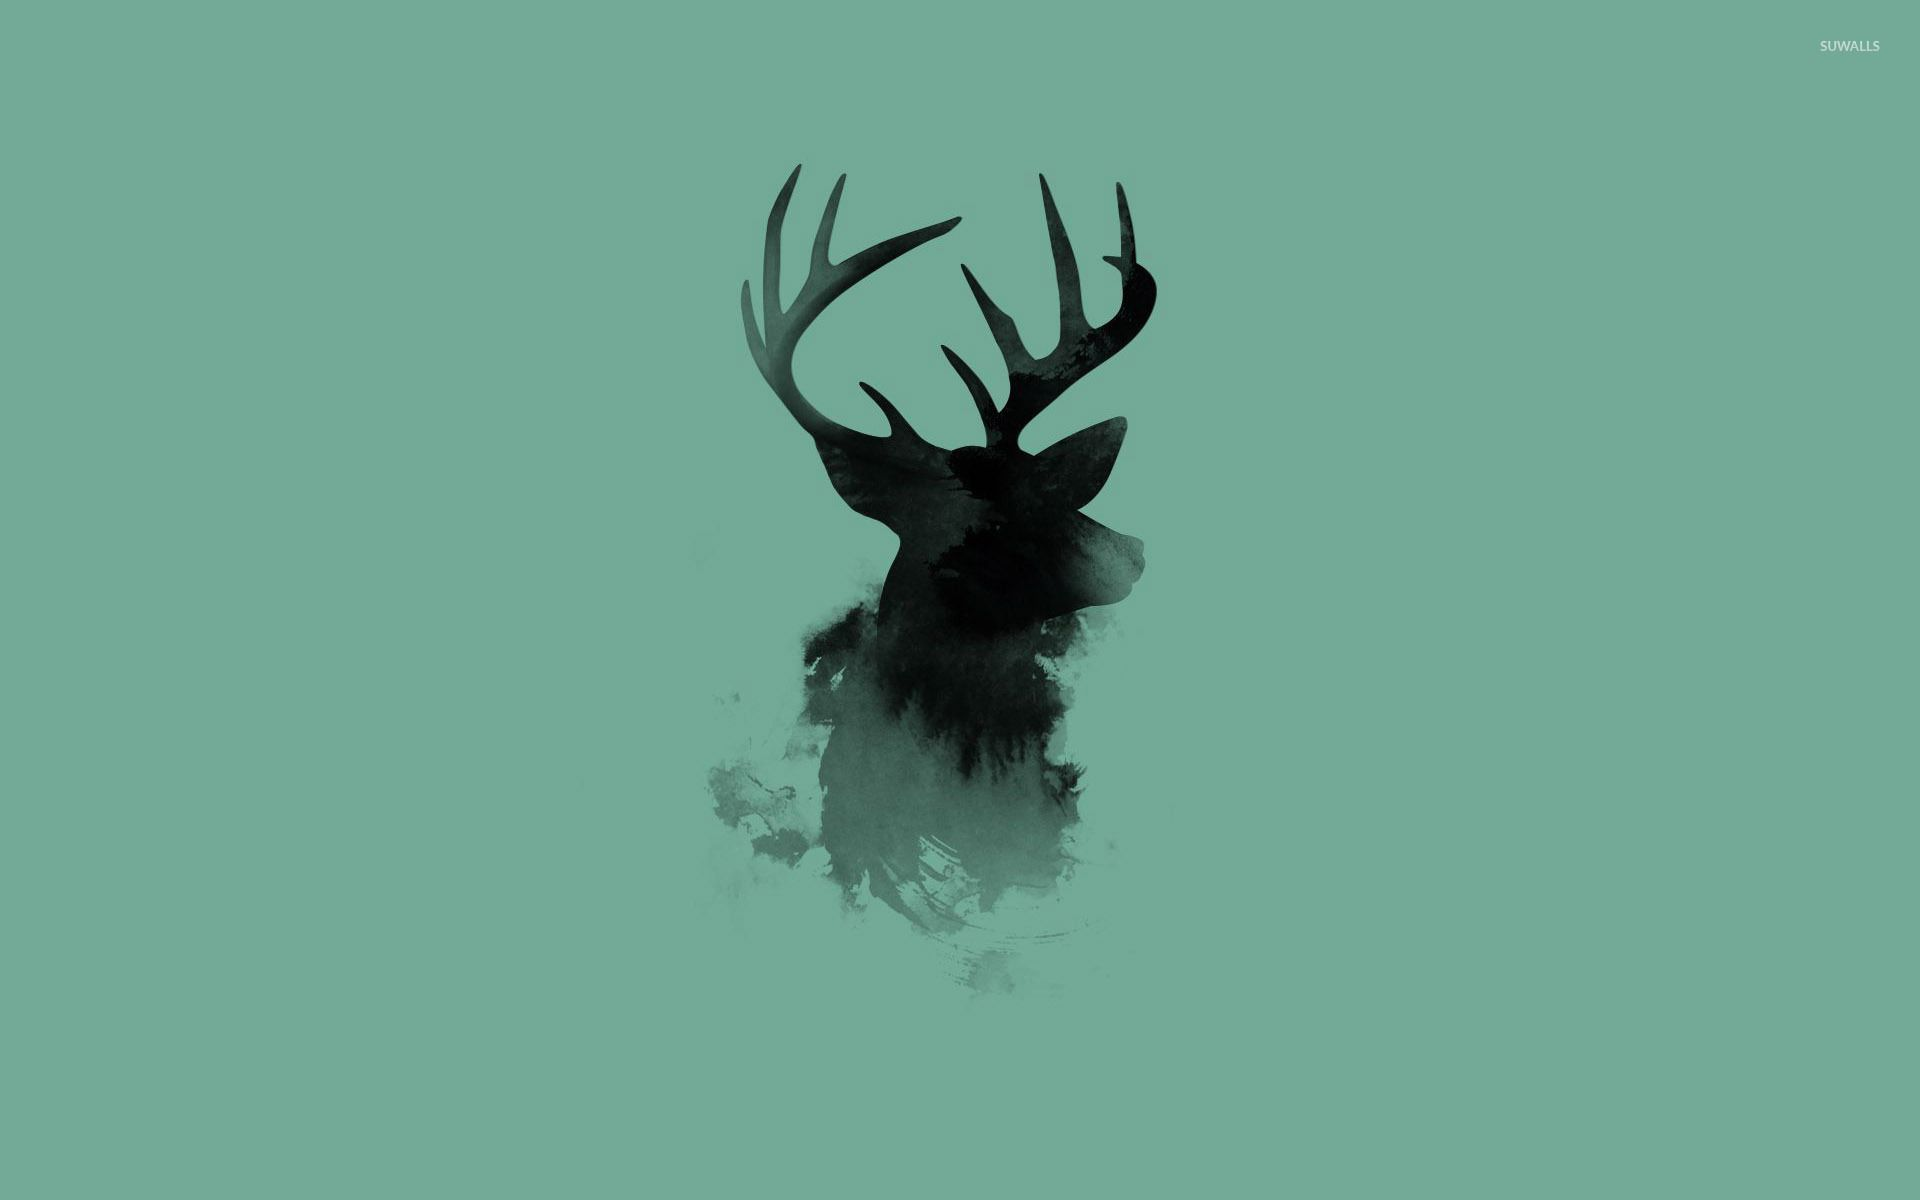 1920x1200 Stag head silhouette wallpaper - Artistic wallpapers - #26505